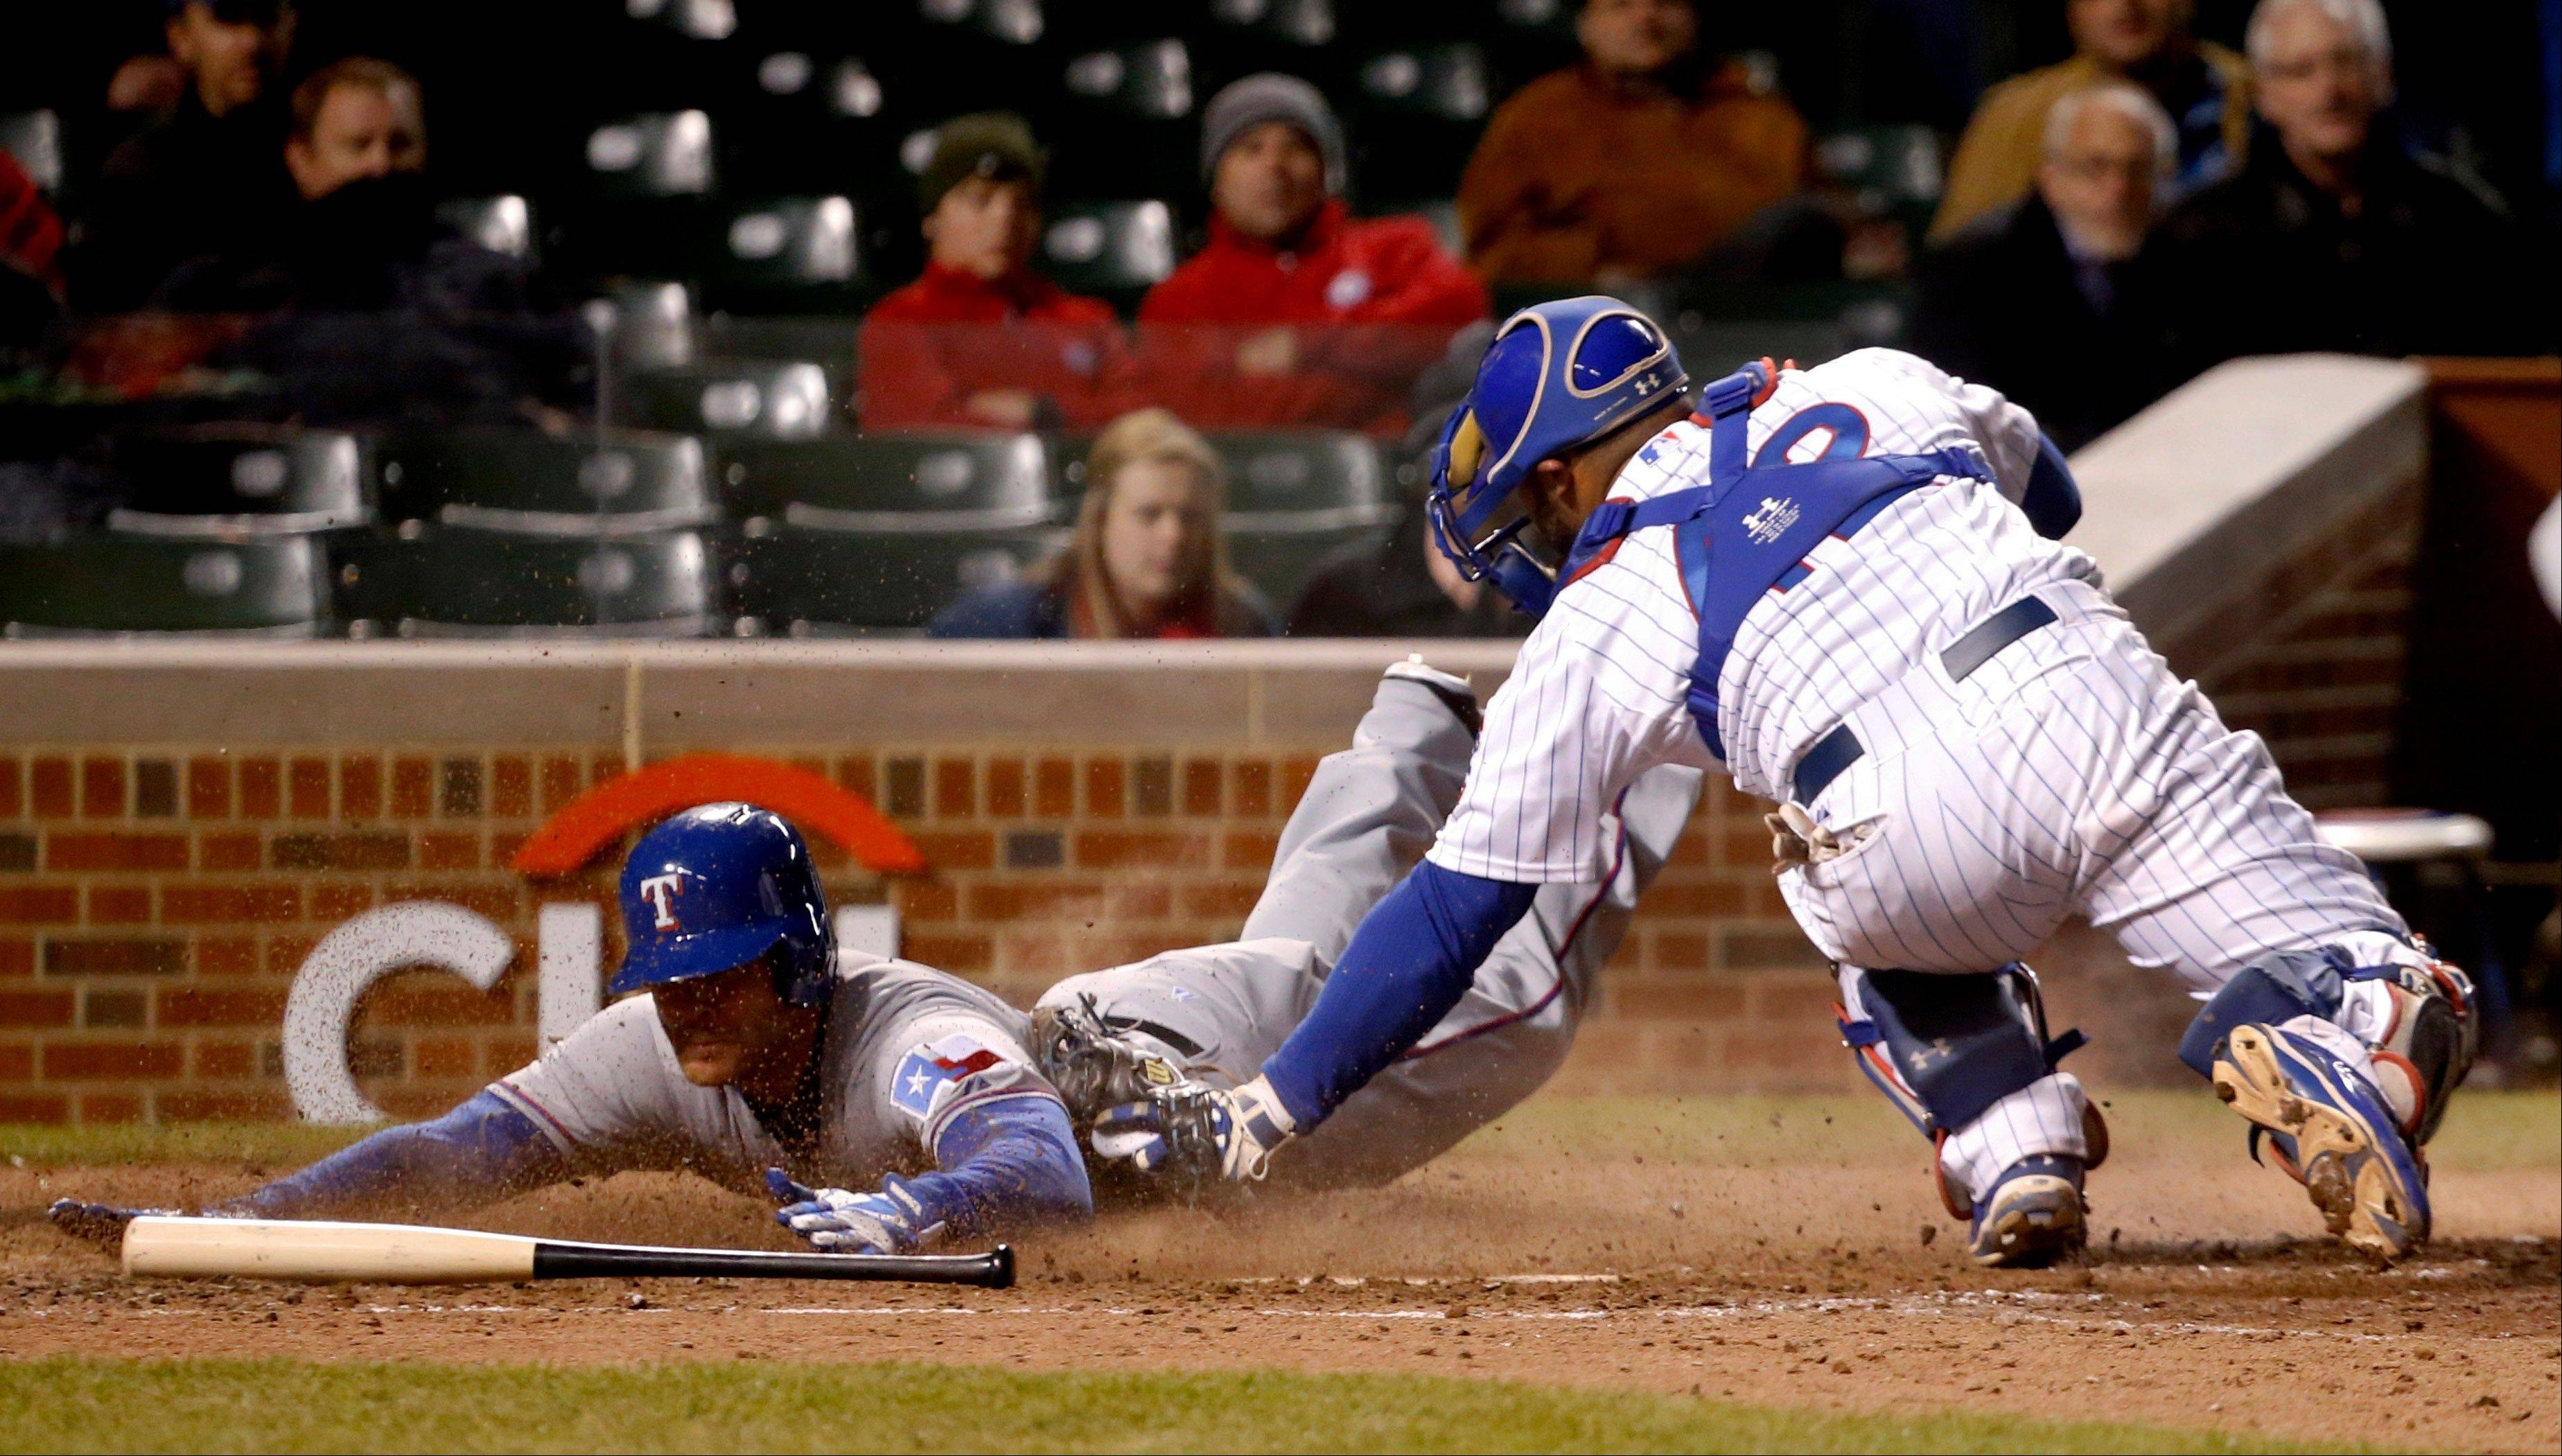 Cubs catcher Welington Castillo tags out Texas Rangers� Craig Gentry at home on a throw from first baseman Anthony Rizzo Tuesday night at Wrigley Field. The Cubs lost to the Rangers 4-2.